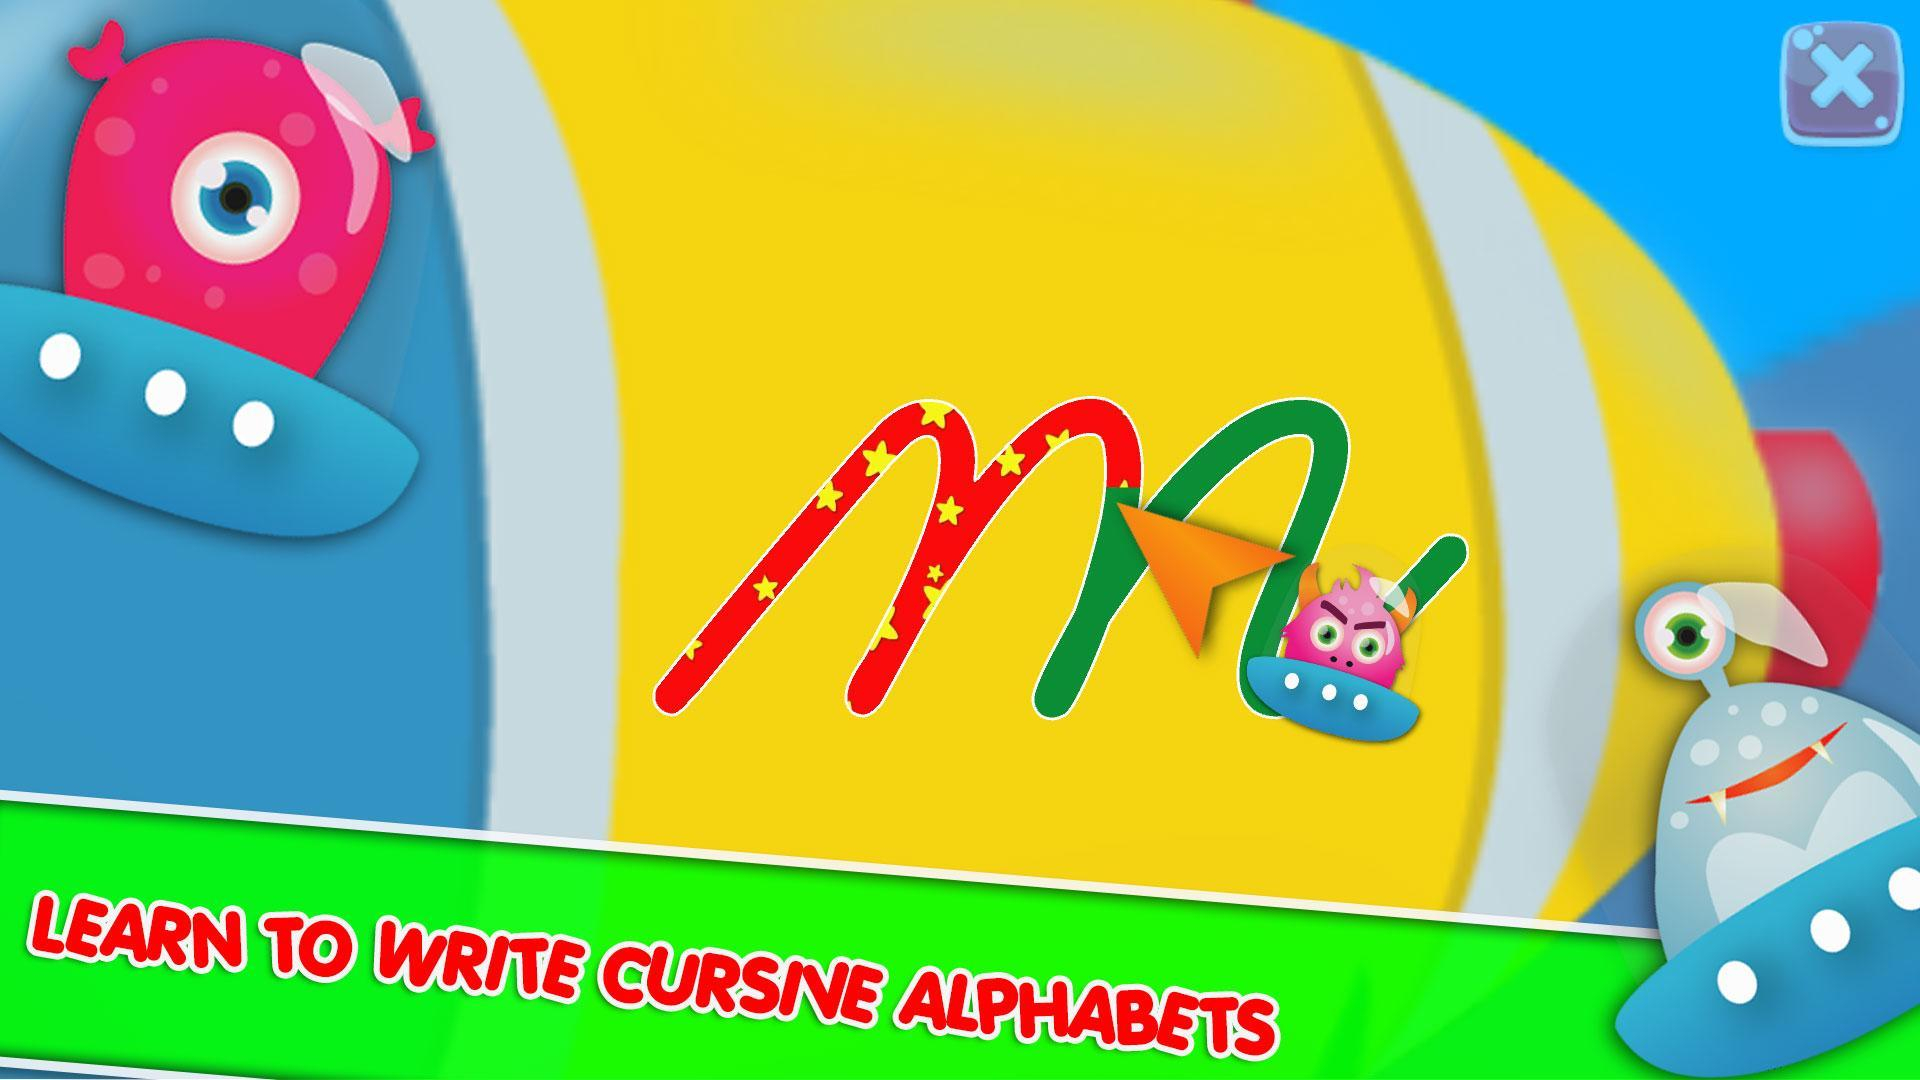 Cursive Writing For Android - Apk Download